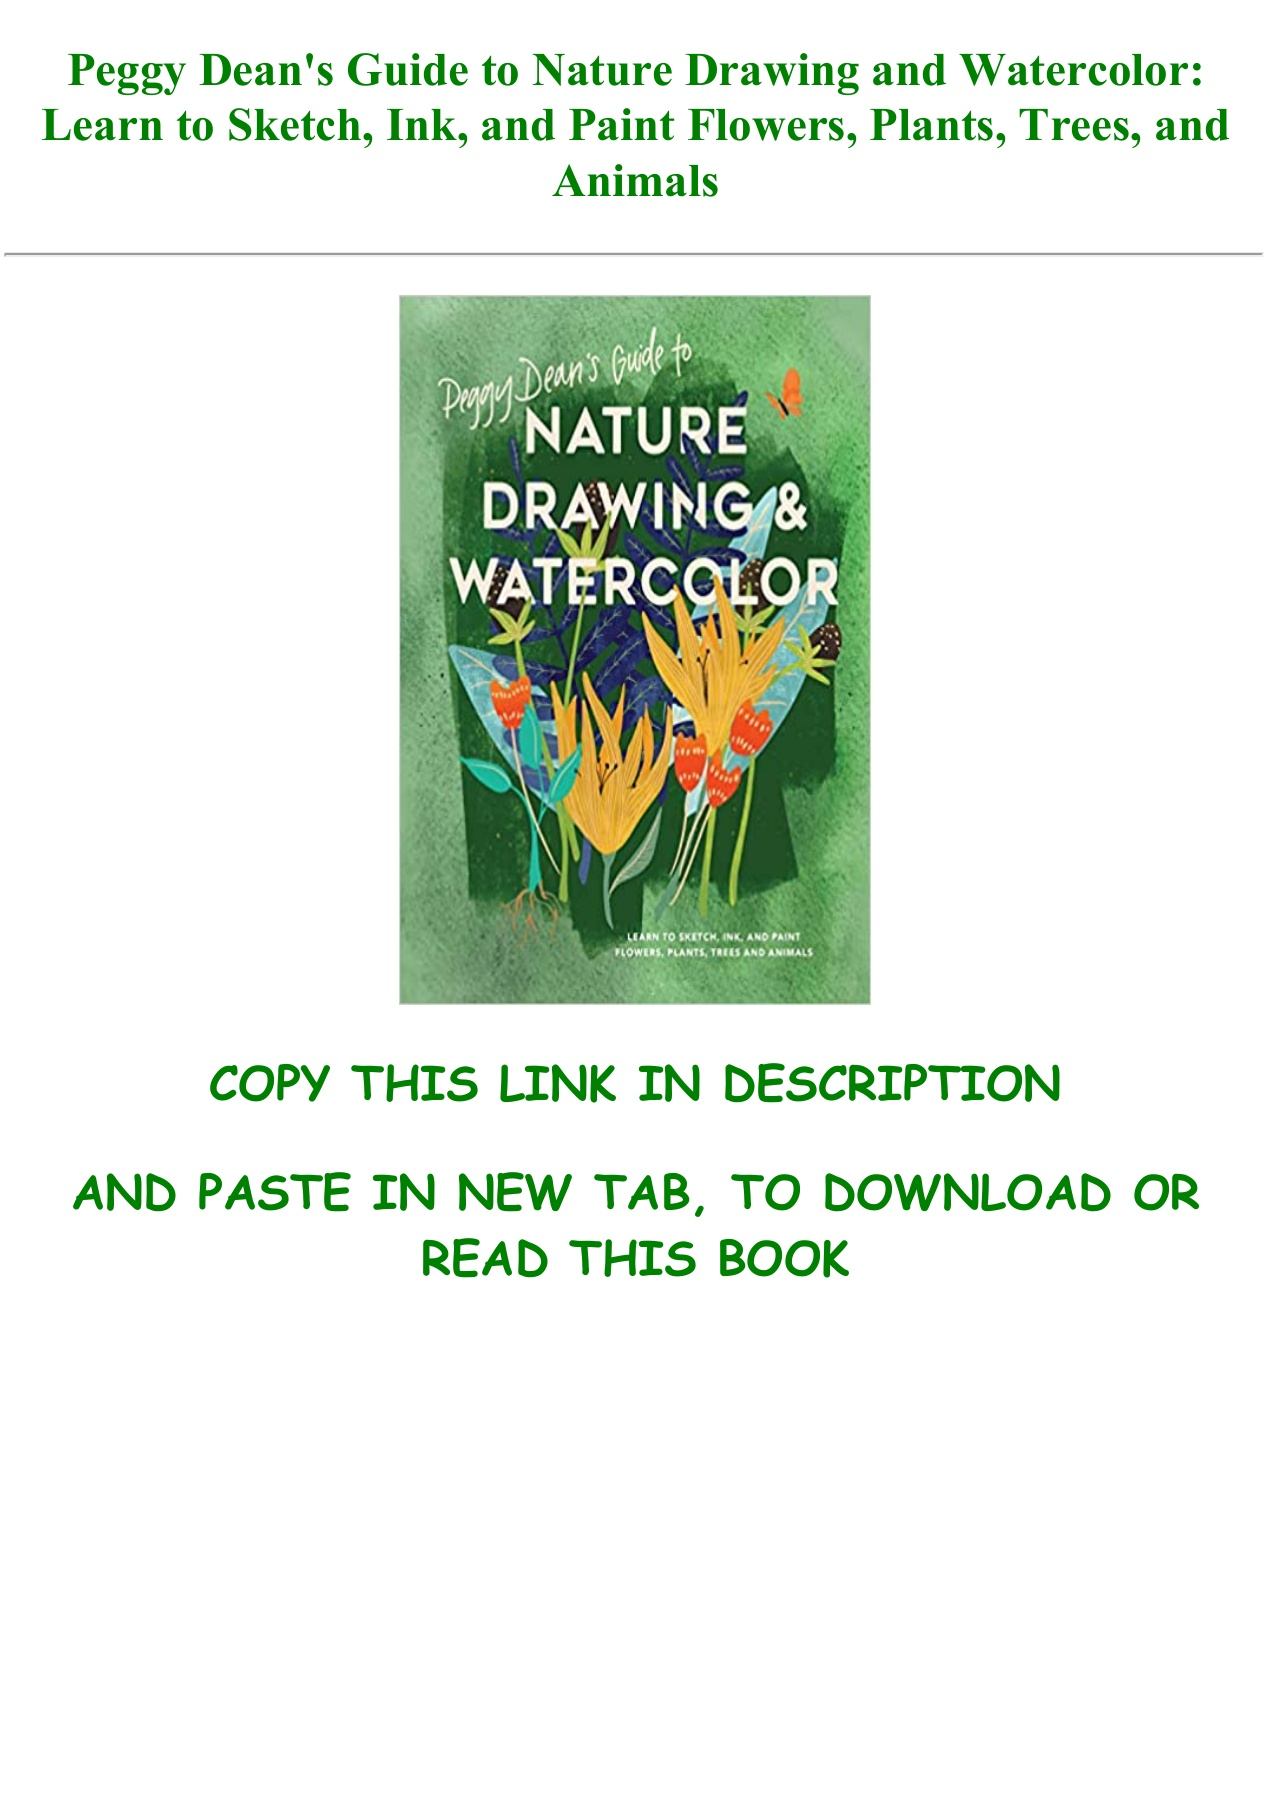 Download Pdf Peggy Dean S Guide To Nature Drawing And Watercolor Learn To Sketch Ink And Paint Flowers Plants Trees And Animals For Any Device Pages 1 1 Text Version Anyflip